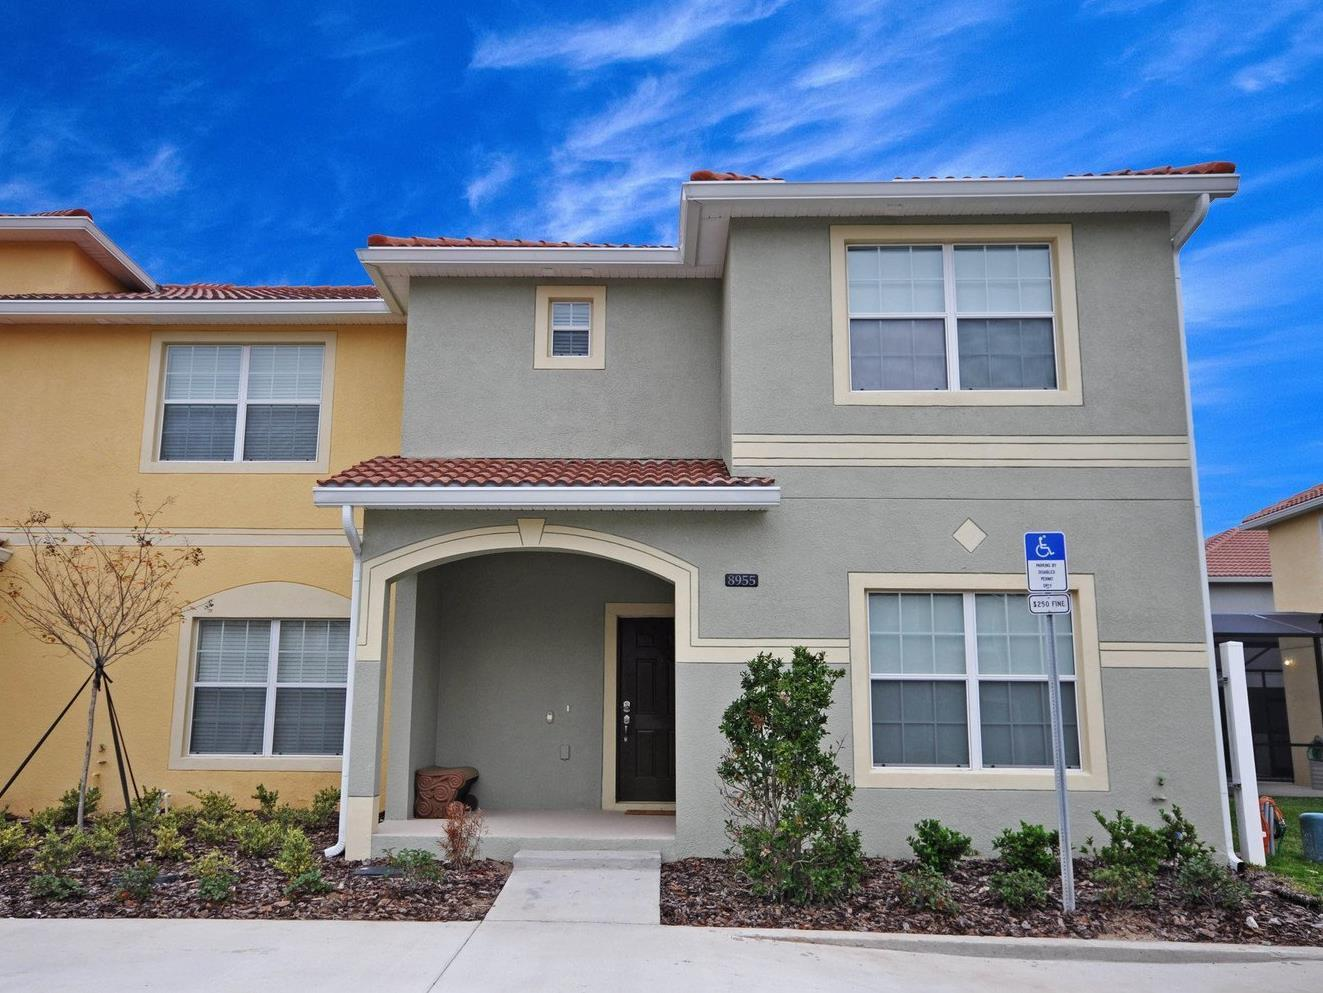 Dpm-115 5 Bedroom 4 Bath Townhouse In Paradise Palms